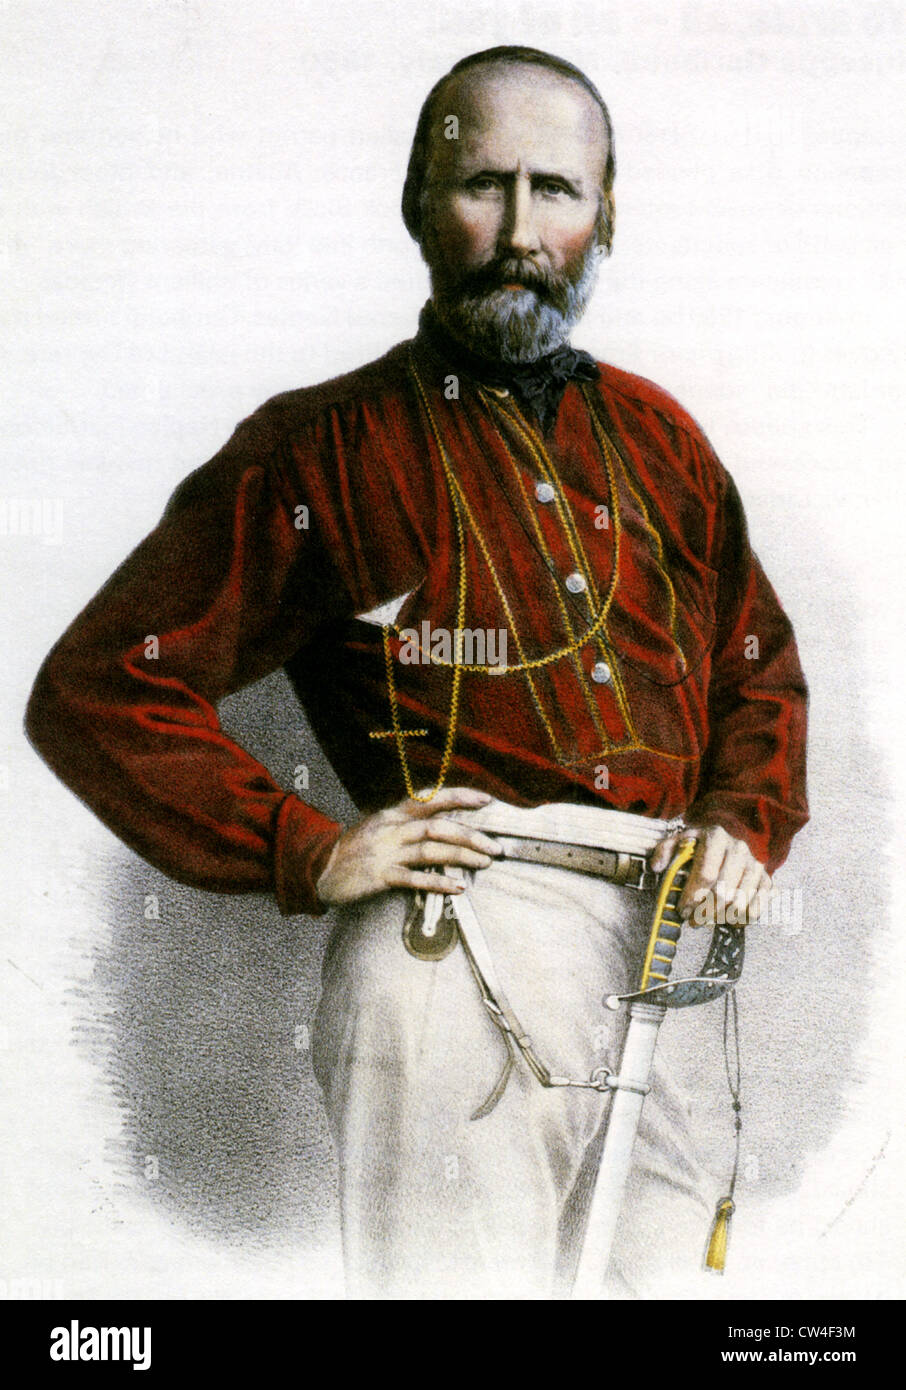 GIUSEPPE GARIBALDI (1807-1882) Italian general and politician. An 1861 engraving showing his signature red shirt - Stock Image